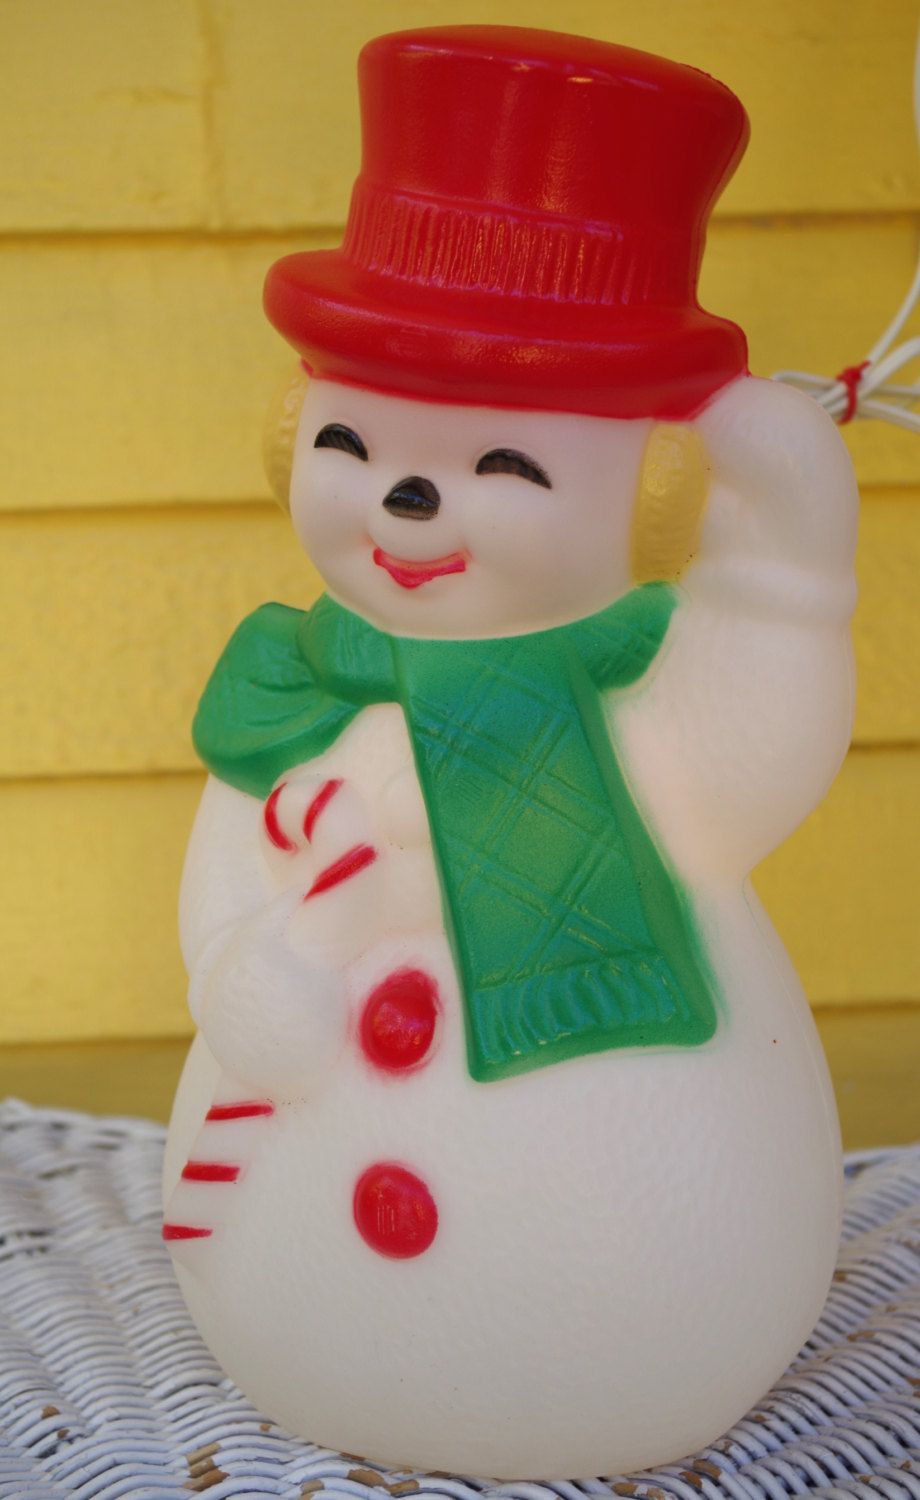 Vintage Blow Mold Frosty The Snowman Light Up Christmas Decoration By Retrowarehouse On Etsy